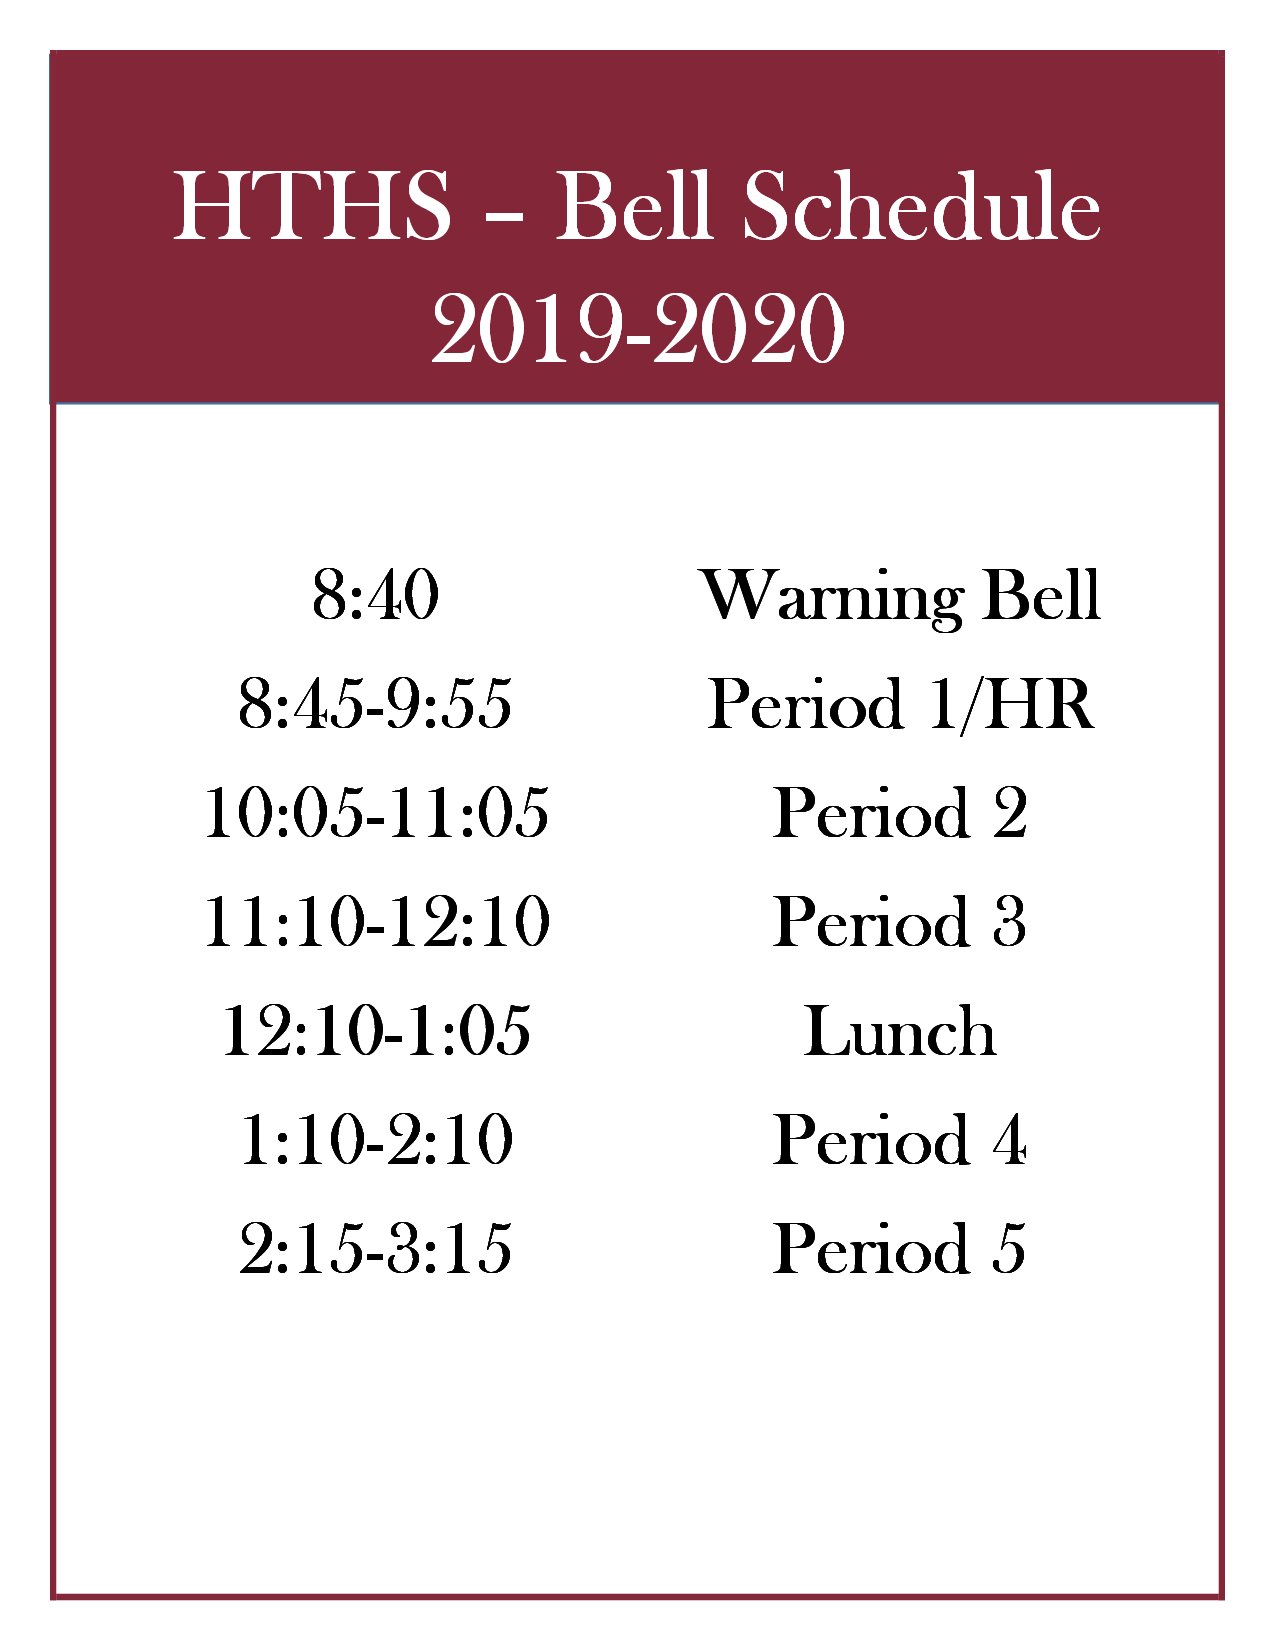 HTHS Bell Schedule19-20Large.png